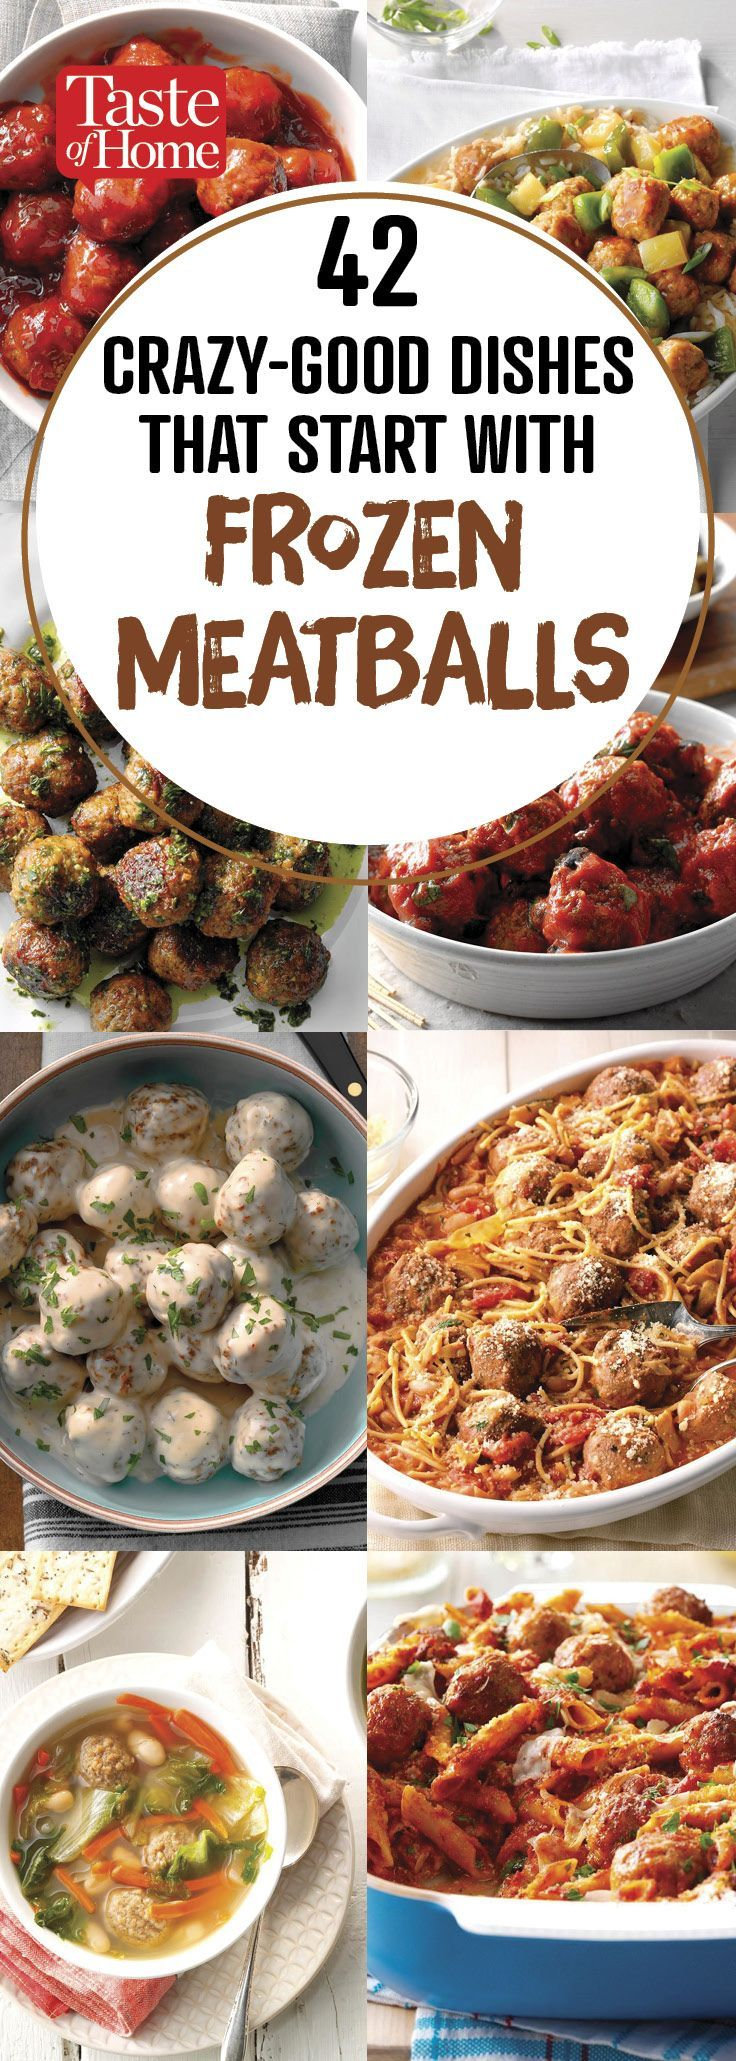 42 Crazy Good Dishes Starring Frozen Meatballs Meatball Recipes Easy Meatball Dinner Meatball Recipes Crockpot